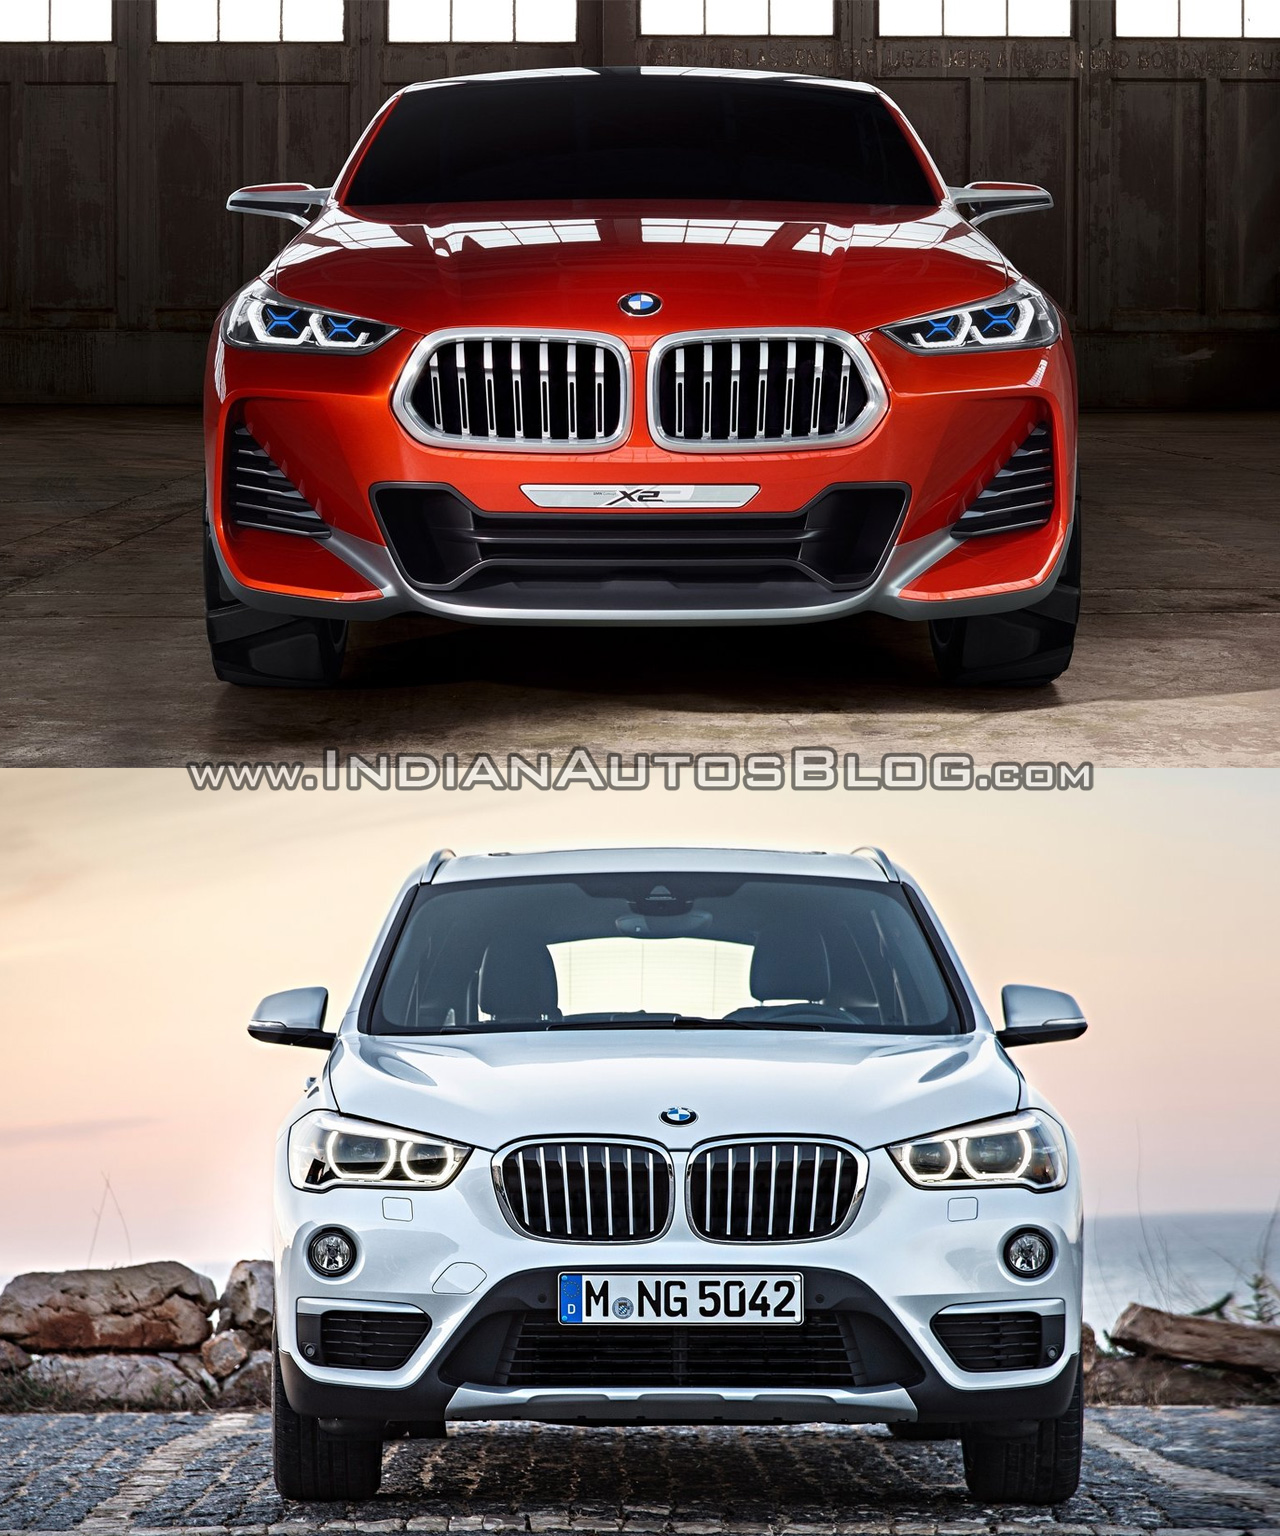 Bmwcarimage: BMW X2 Vs. BMW X1 Front Image